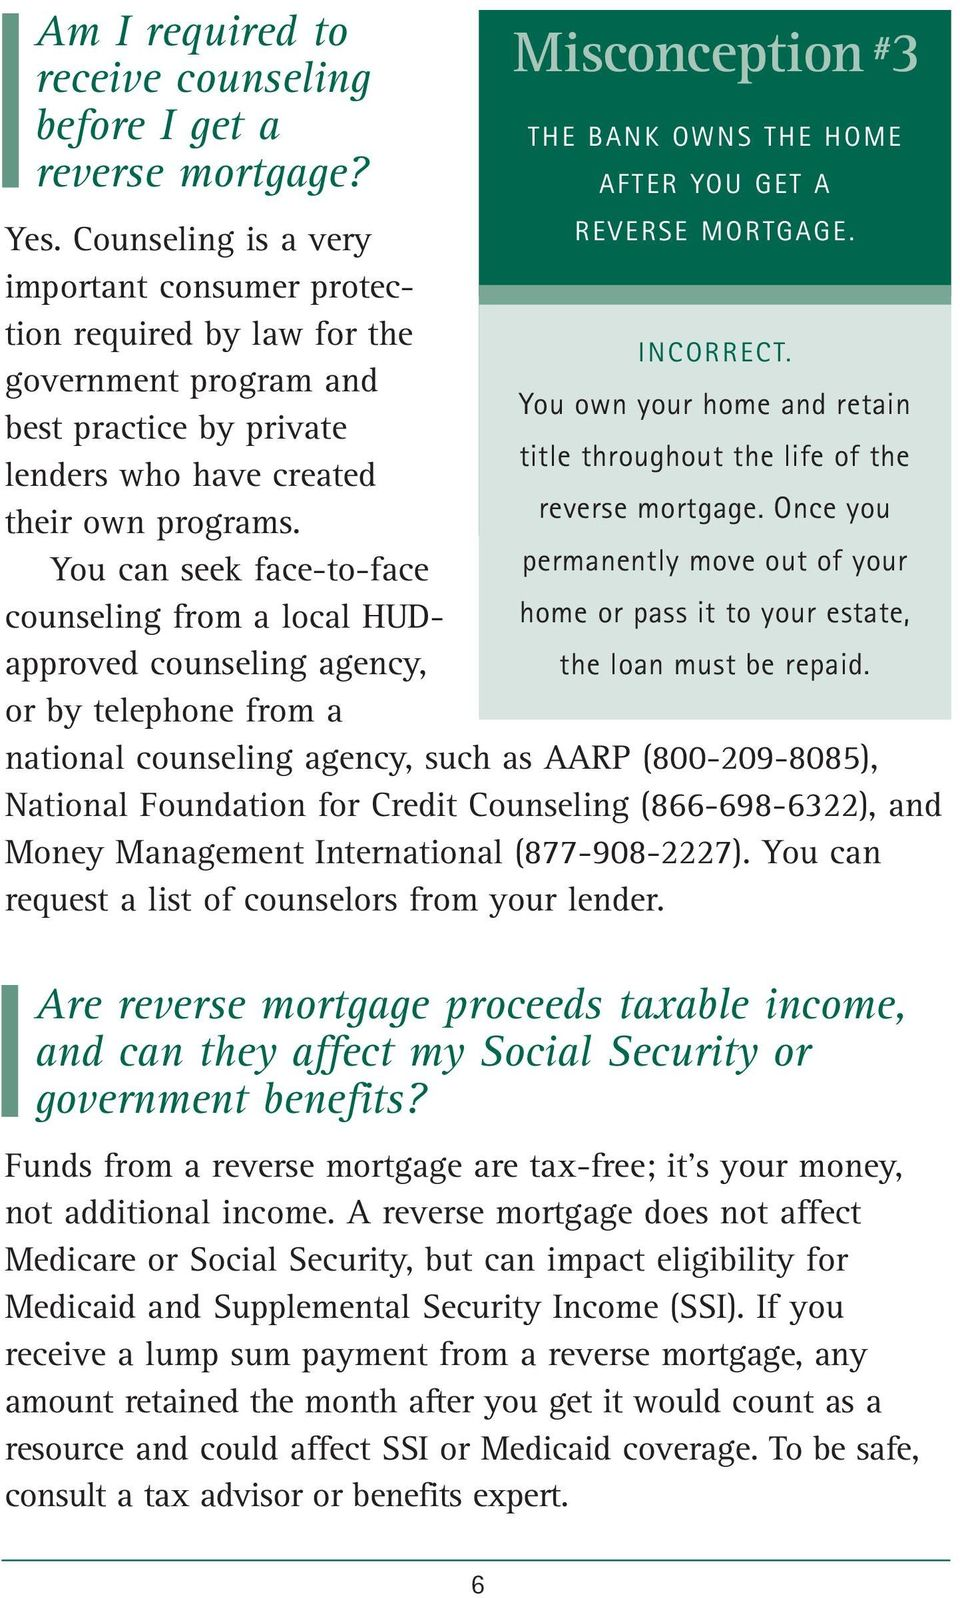 government program and You own your home and retain best practice by private title throughout the life of the lenders who have created their own programs. reverse mortgage.